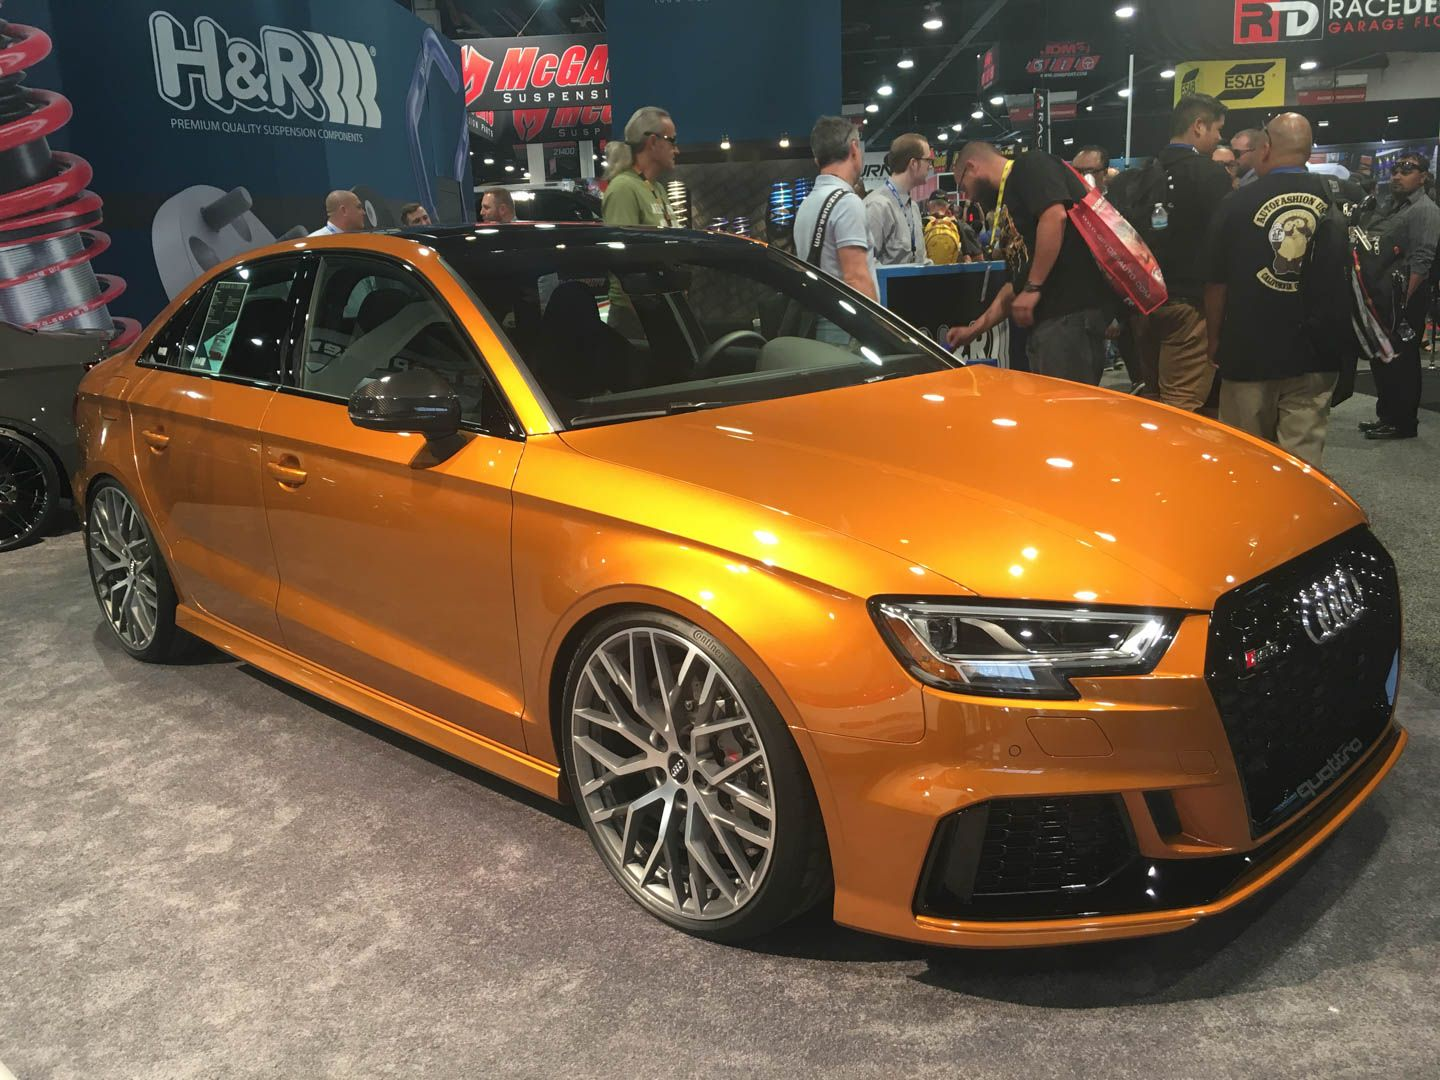 H&R had a pair of Audi RS3 Sedans at the 2017 SEMA Show